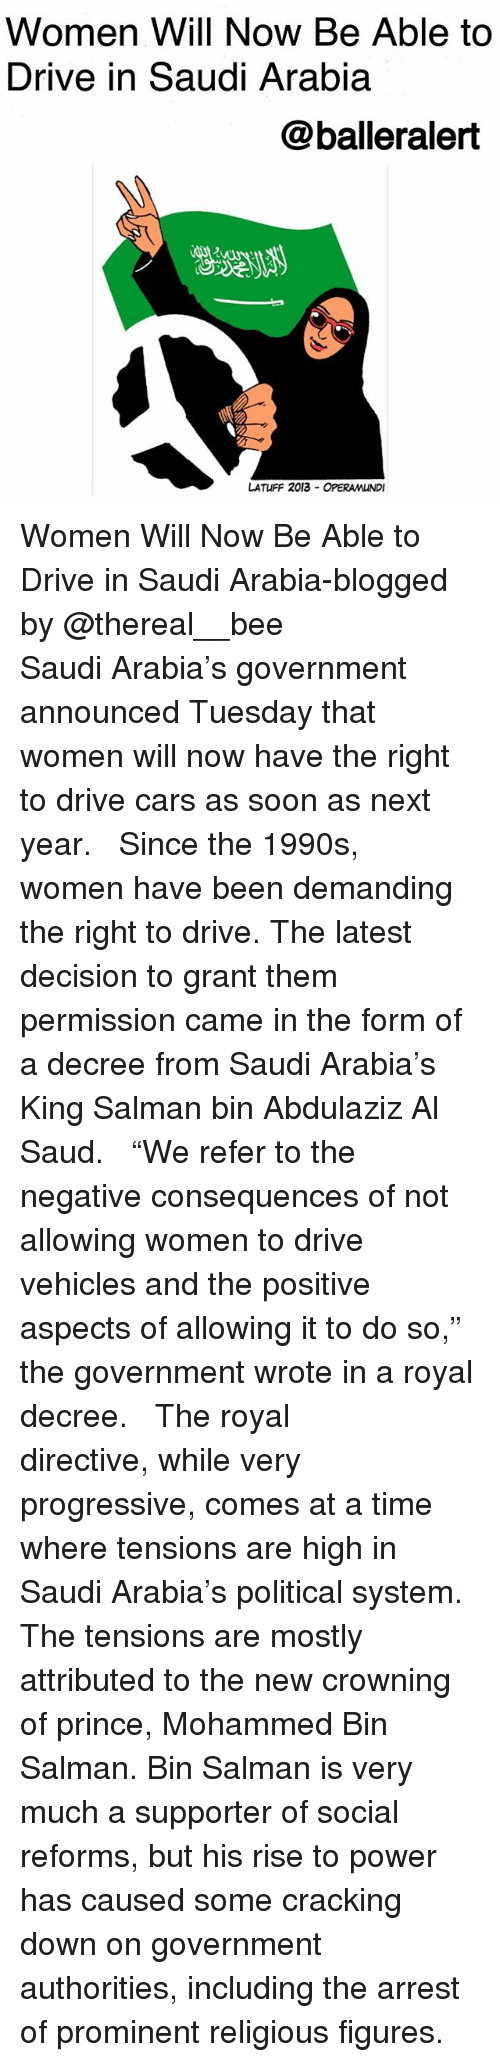 "salman: Women Will Now Be Able to  Drive in Saudi Arabia  @balleralert  じ2  LATUFF 2013 OPERAMUNDI Women Will Now Be Able to Drive in Saudi Arabia-blogged by @thereal__bee ⠀⠀⠀⠀⠀⠀⠀⠀⠀ ⠀⠀ Saudi Arabia's government announced Tuesday that women will now have the right to drive cars as soon as next year. ⠀⠀⠀⠀⠀⠀⠀⠀⠀ ⠀⠀ Since the 1990s, women have been demanding the right to drive. The latest decision to grant them permission came in the form of a decree from Saudi Arabia's King Salman bin Abdulaziz Al Saud. ⠀⠀⠀⠀⠀⠀⠀⠀⠀ ⠀⠀ ""We refer to the negative consequences of not allowing women to drive vehicles and the positive aspects of allowing it to do so,"" the government wrote in a royal decree. ⠀⠀⠀⠀⠀⠀⠀⠀⠀ ⠀⠀ The royal directive, while very progressive, comes at a time where tensions are high in Saudi Arabia's political system. The tensions are mostly attributed to the new crowning of prince, Mohammed Bin Salman. Bin Salman is very much a supporter of social reforms, but his rise to power has caused some cracking down on government authorities, including the arrest of prominent religious figures."